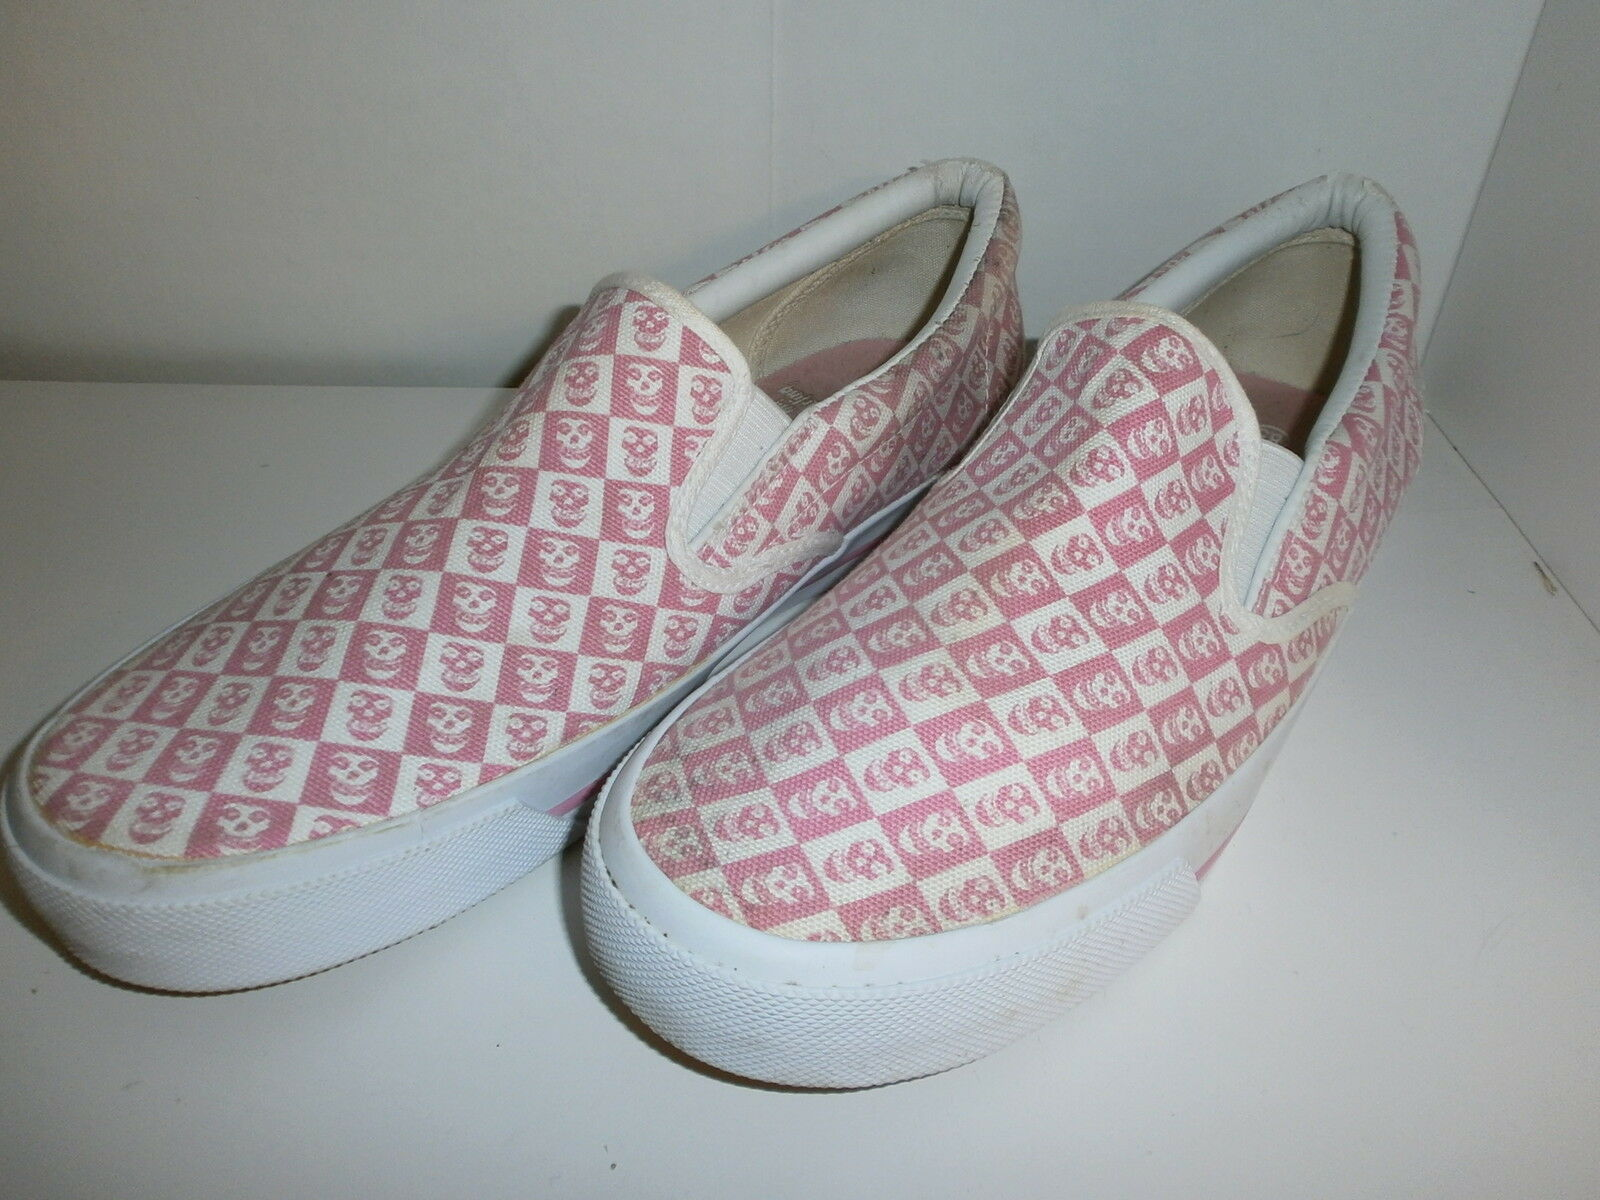 MISFITS DIE MY Pink DARLING TENNIS SHOES Skater Pink MY Checkerboard Skull Logo 8.5 c07e9a